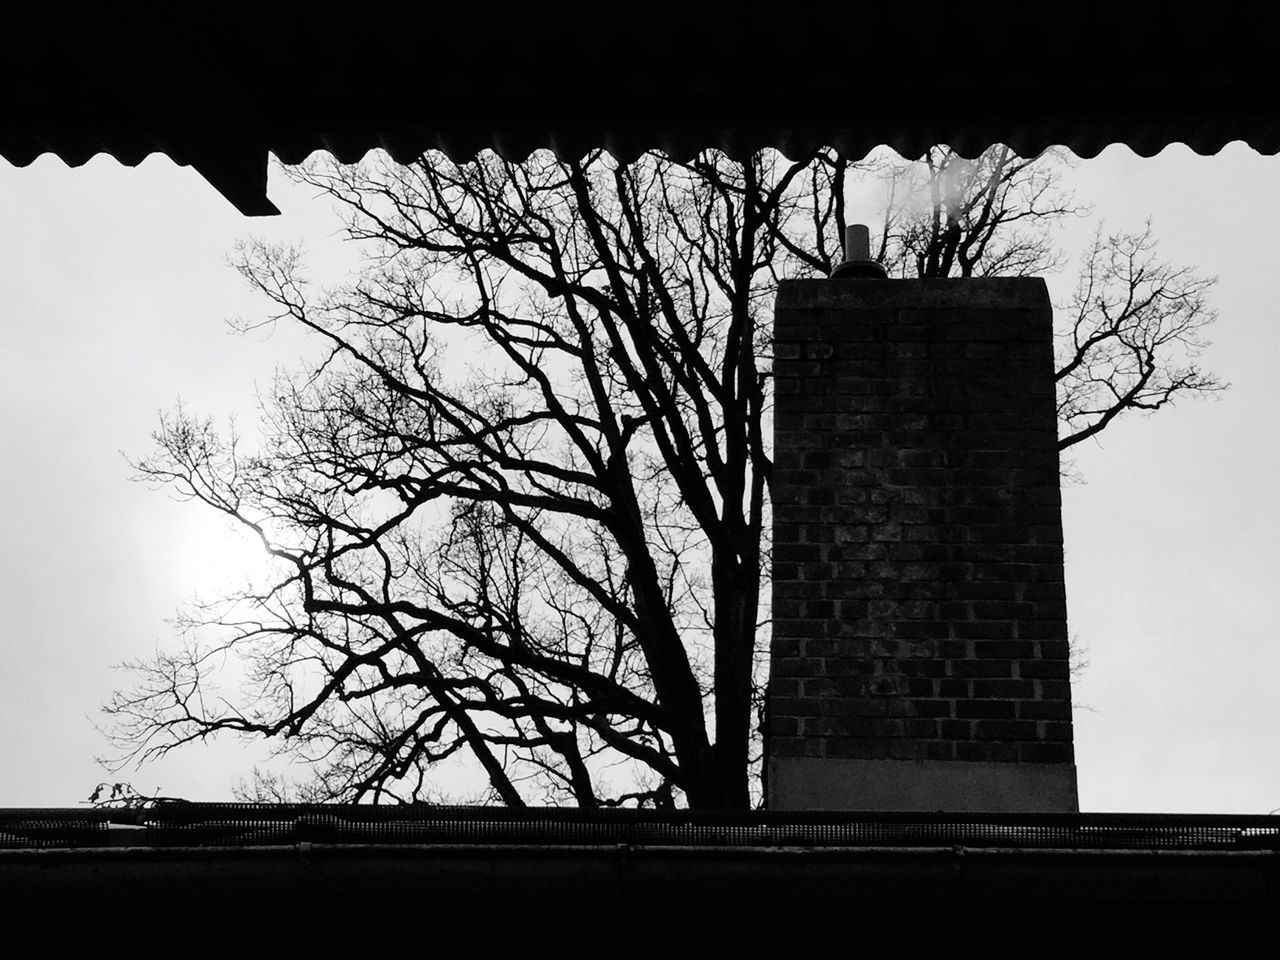 Showcase March Streetphotography Urban Capture The Moment Still Life Grey Sky Blackandwhite Sad Melancholy Cityscapes Architecture OutsideBuilding Exterior Chimney Tree Winter Cloudy Silhouette Learn & Shoot: Simplicity Learn & Shoot: Leading Lines From My Point Of View Different Perspective Structure Thoughts Wintertime